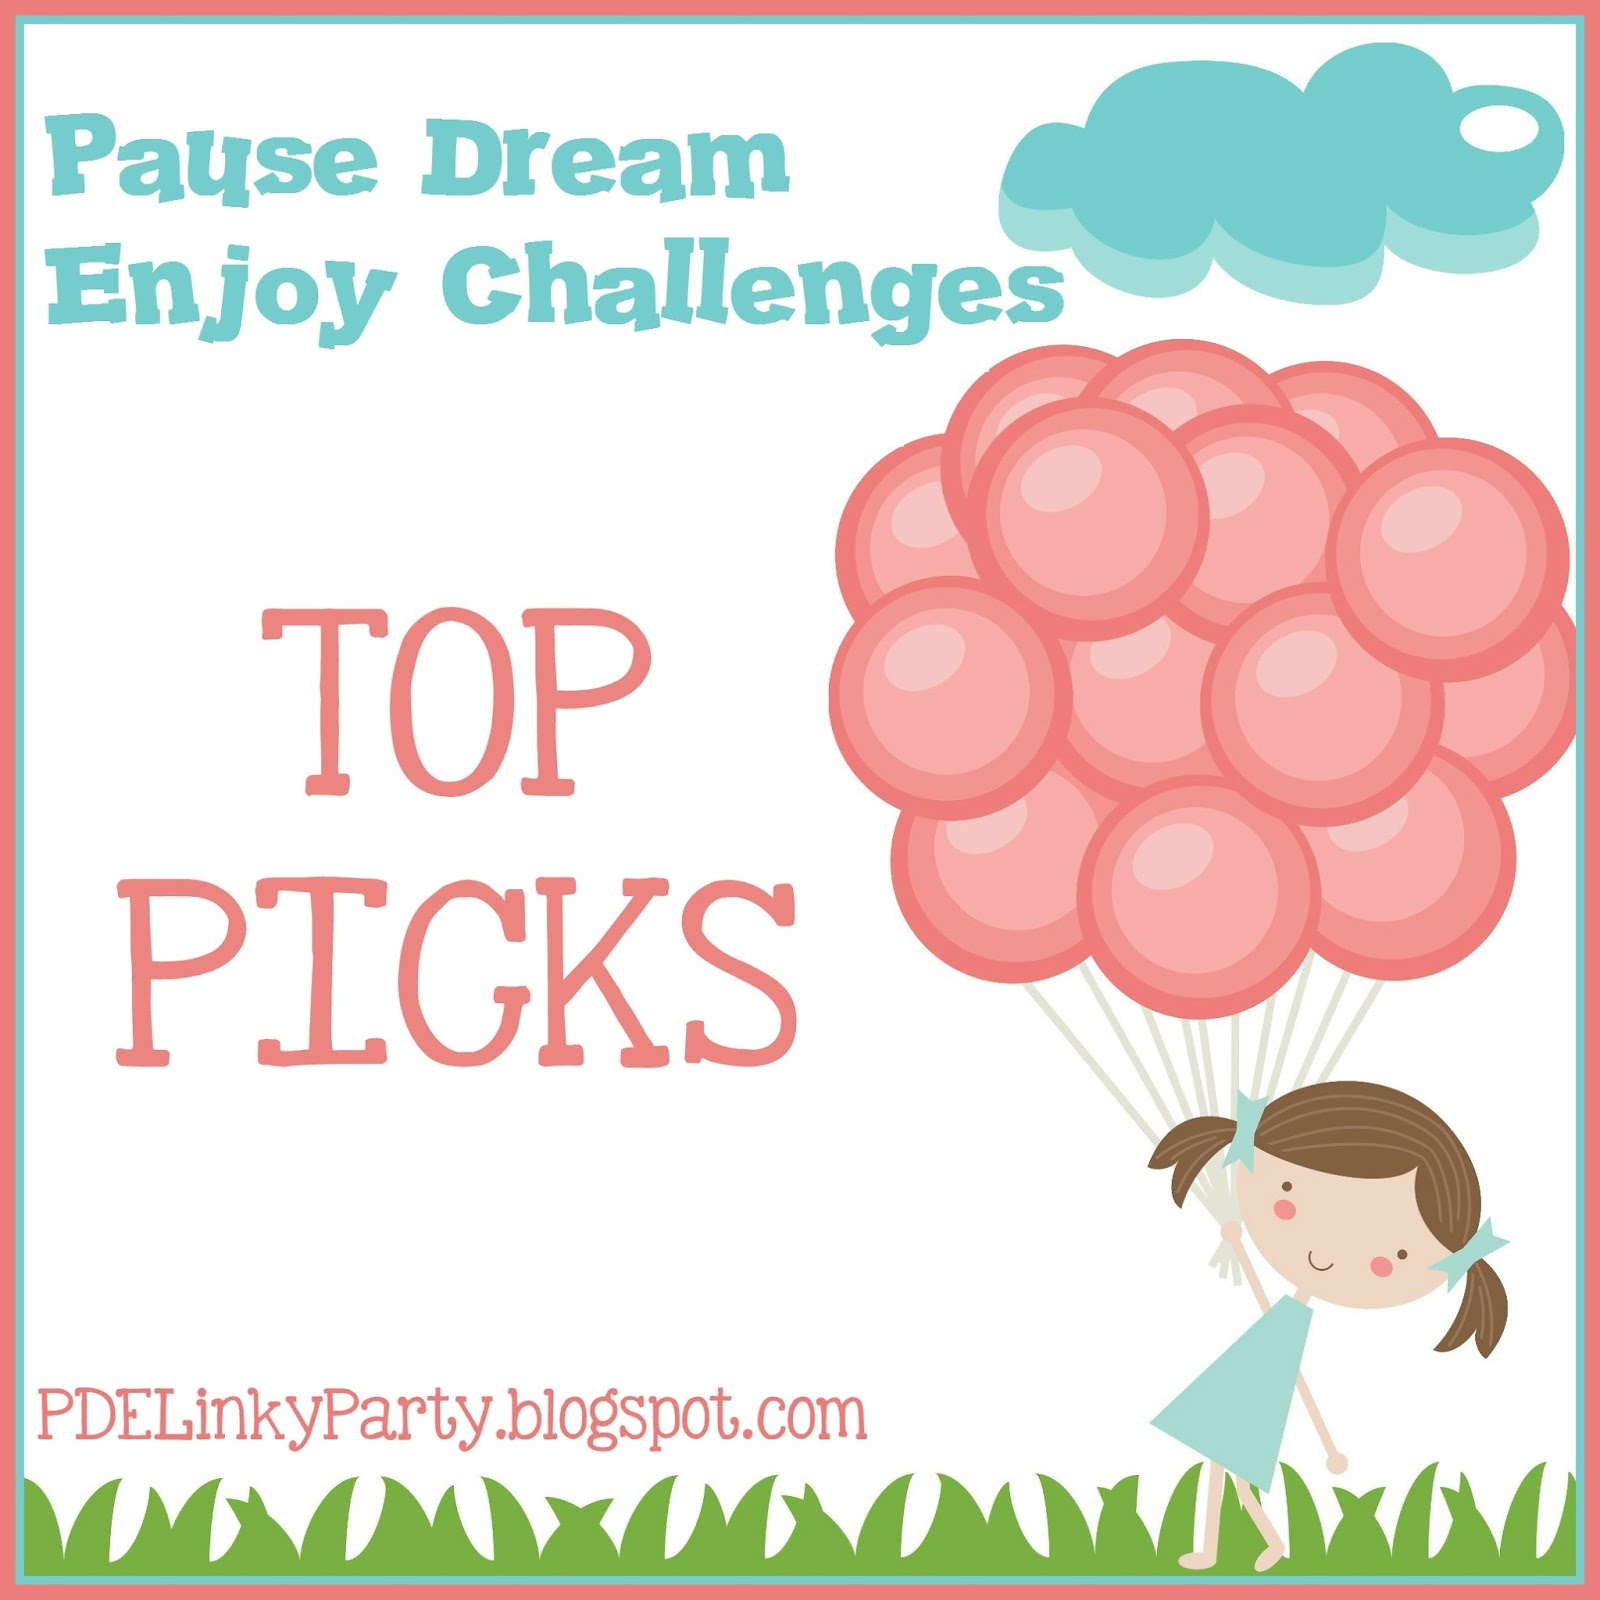 Top Picks - Pause Dream Enjoy Challenges